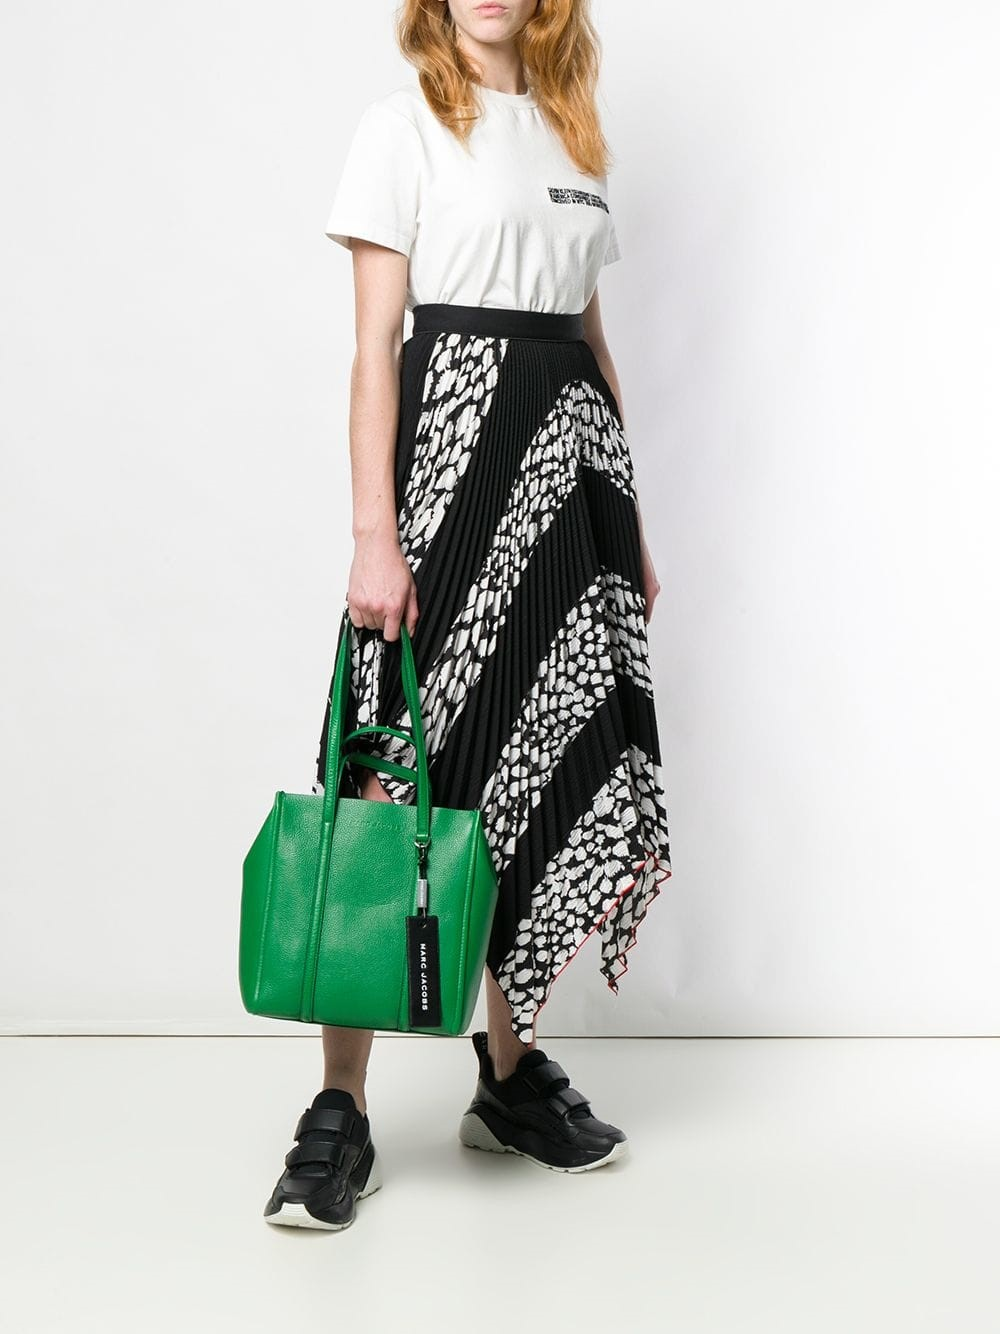 ed76e7f71132 marc jacobs TAG 29 TOTE BAG available on montiboutique.com - 26067